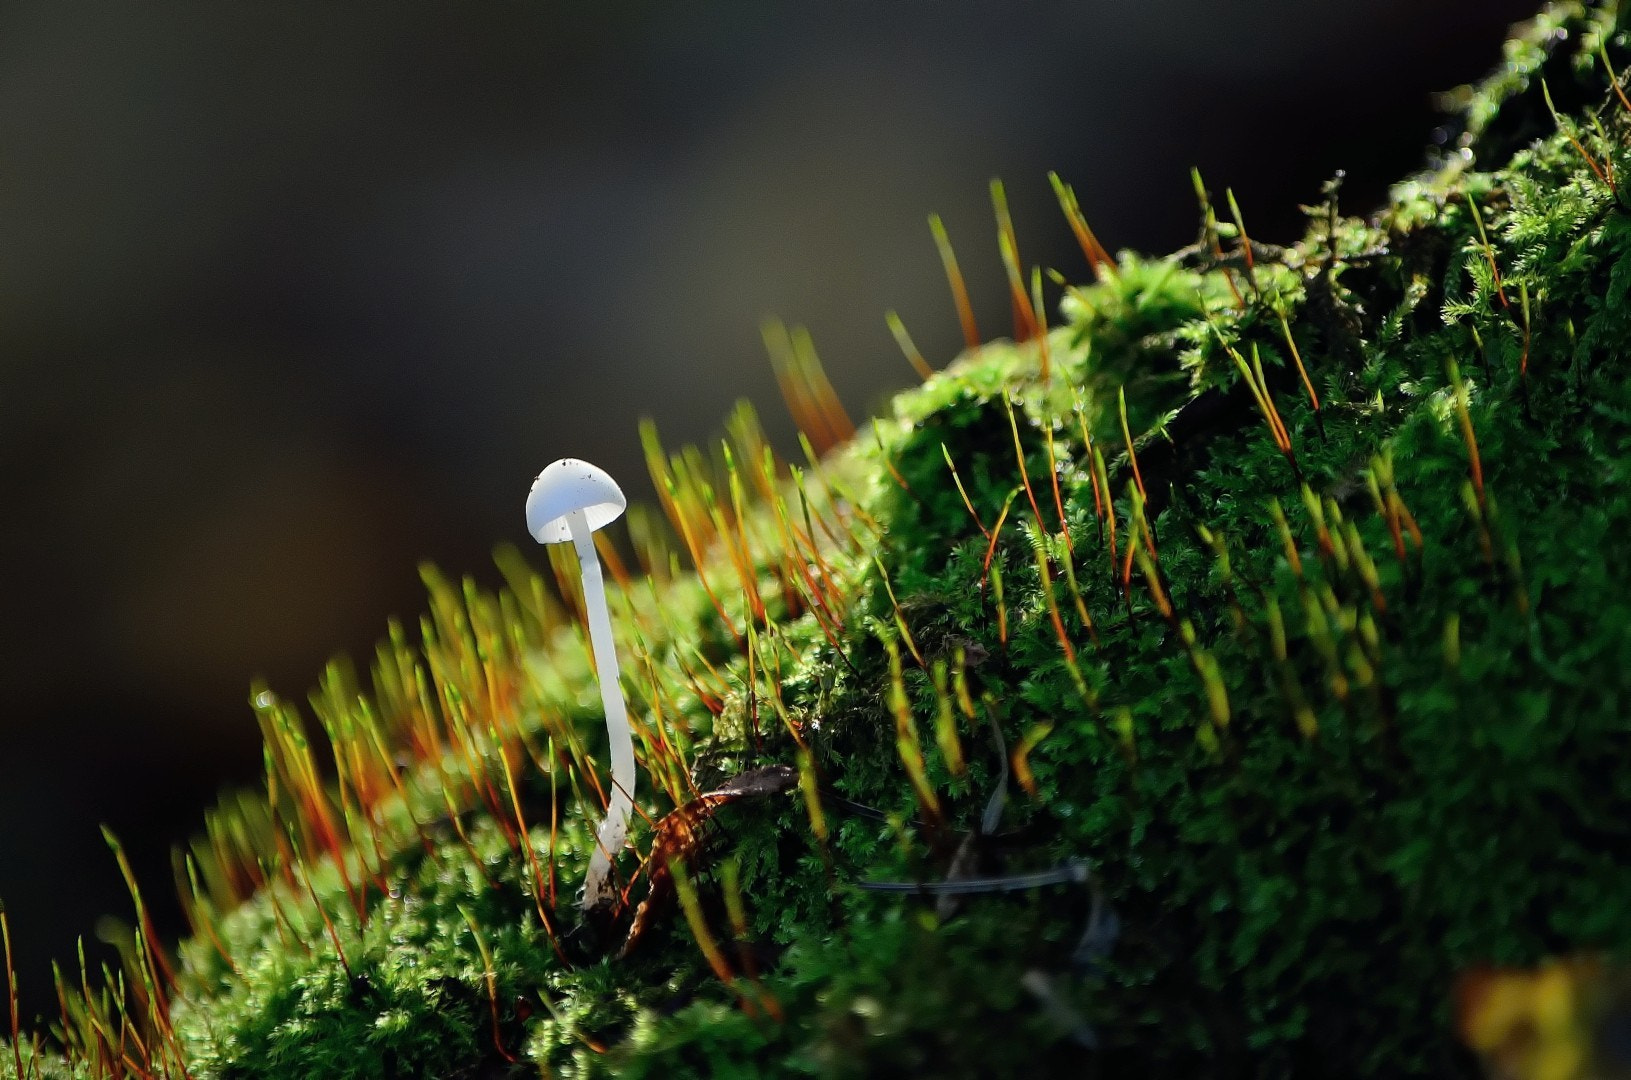 Photograph Lonely mushroom by Ferenc Gelencsér on 500px